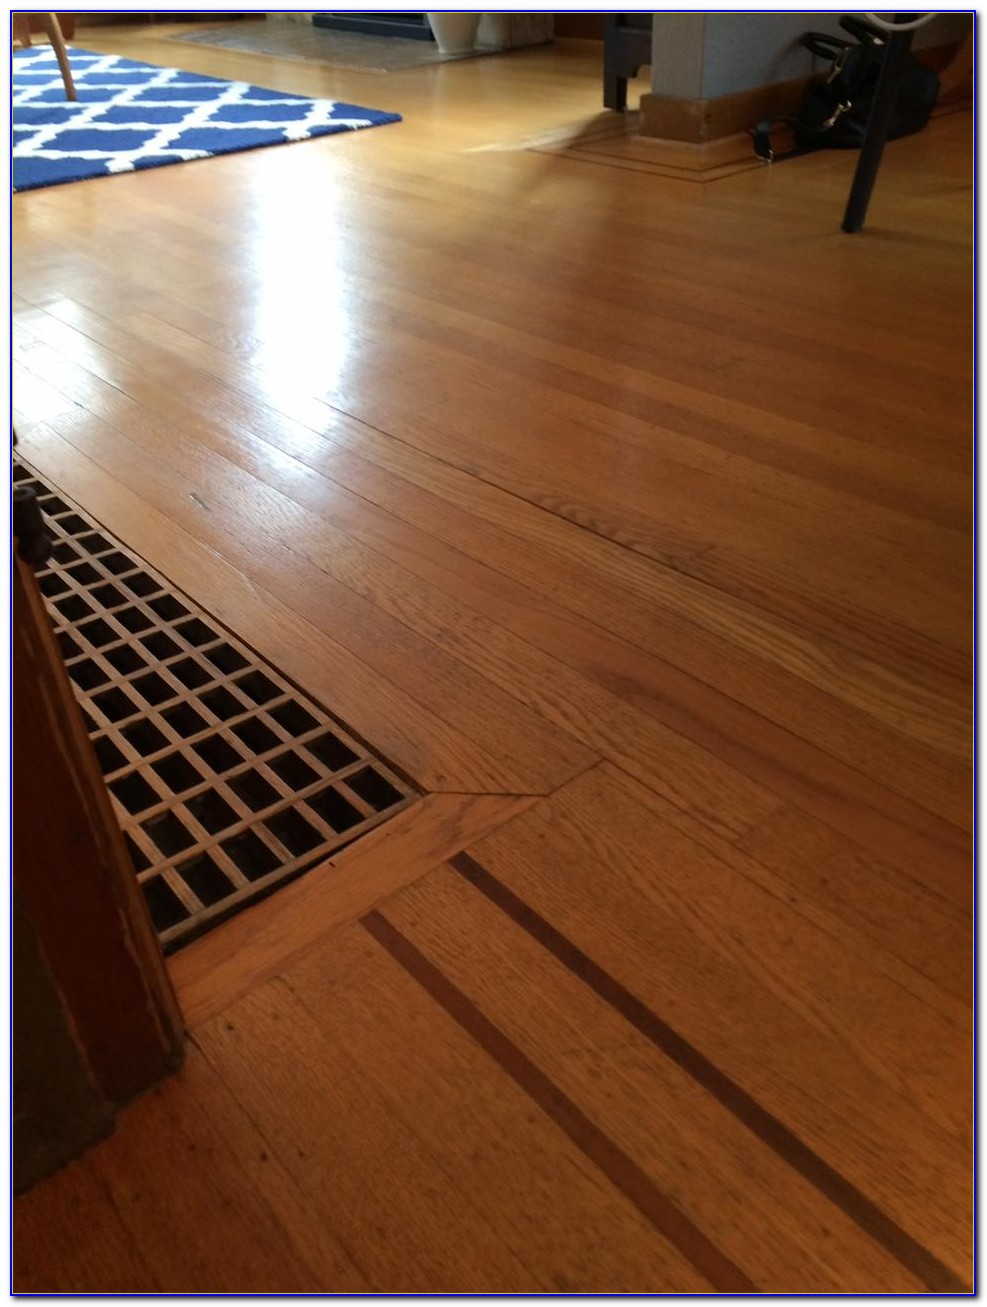 Wood Floors For Radiant Heat